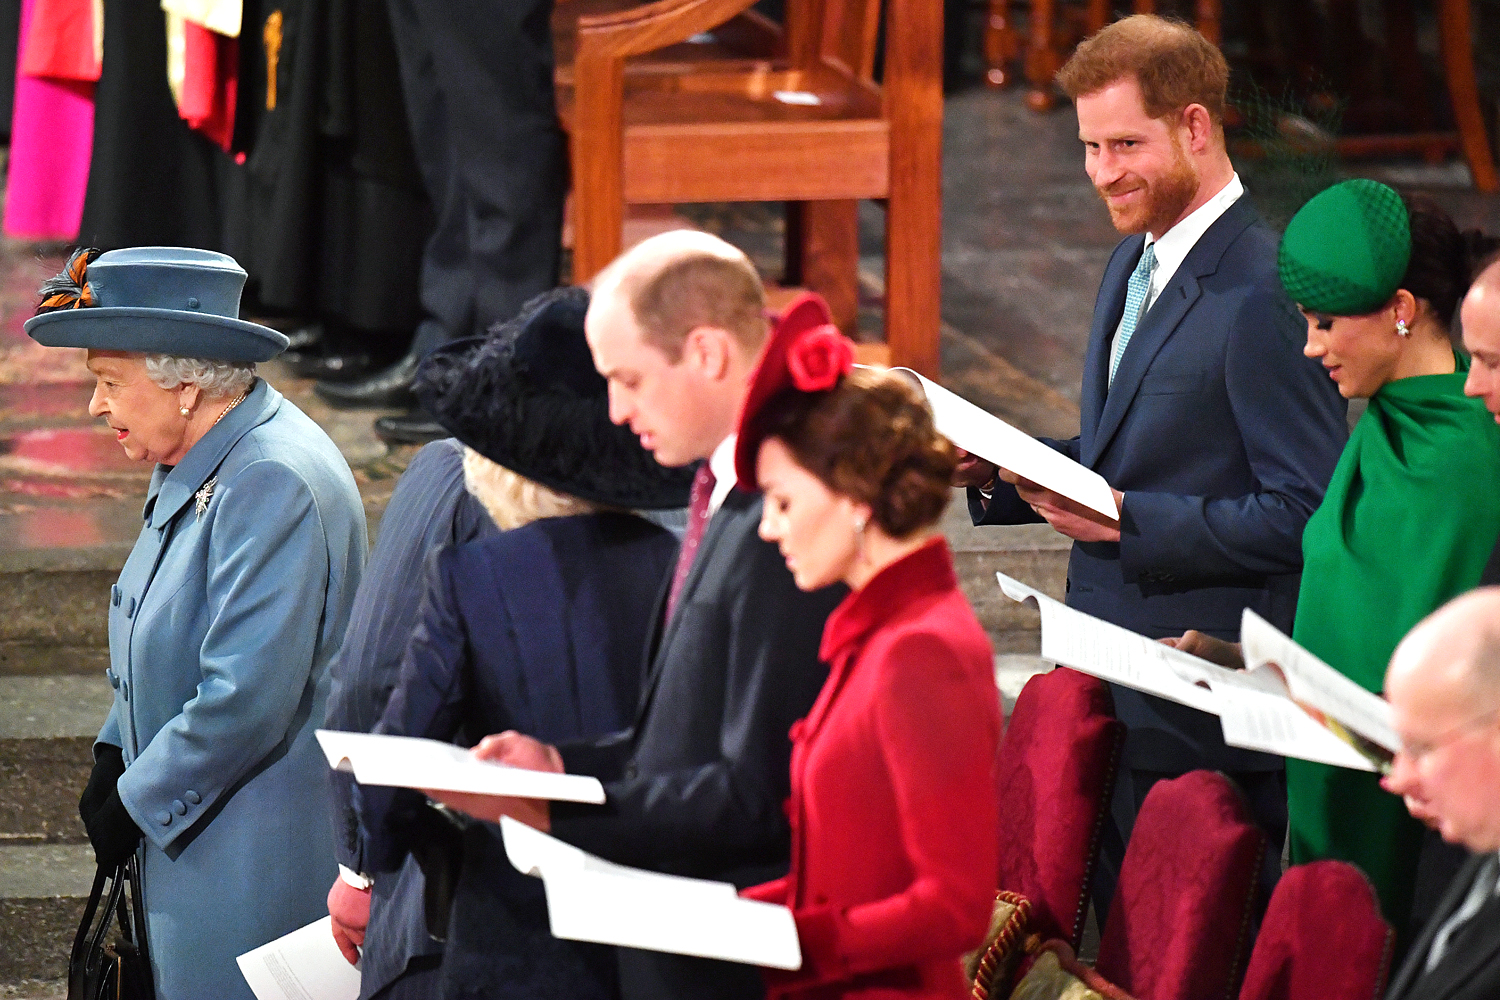 Queen Elizabeth II, Prince William, Duke of Cambridge, Catherine, Duchess of Cambridge, Prince Harry, Duke of Sussex, Meghan, Duchess of Sussex, Prince Edward, Earl of Wessex and Sophie, Countess of Wessex